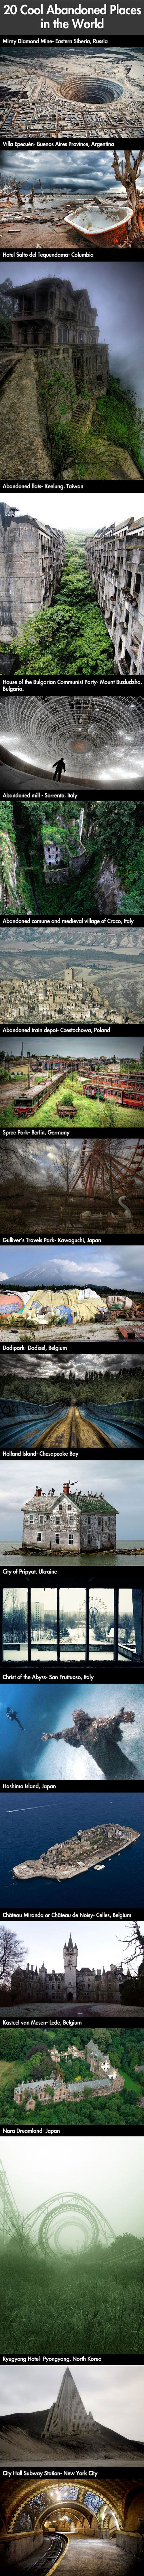 Amazing Abandoned Places In The World F U N F A C T S Pinterest Geek Culture Places To